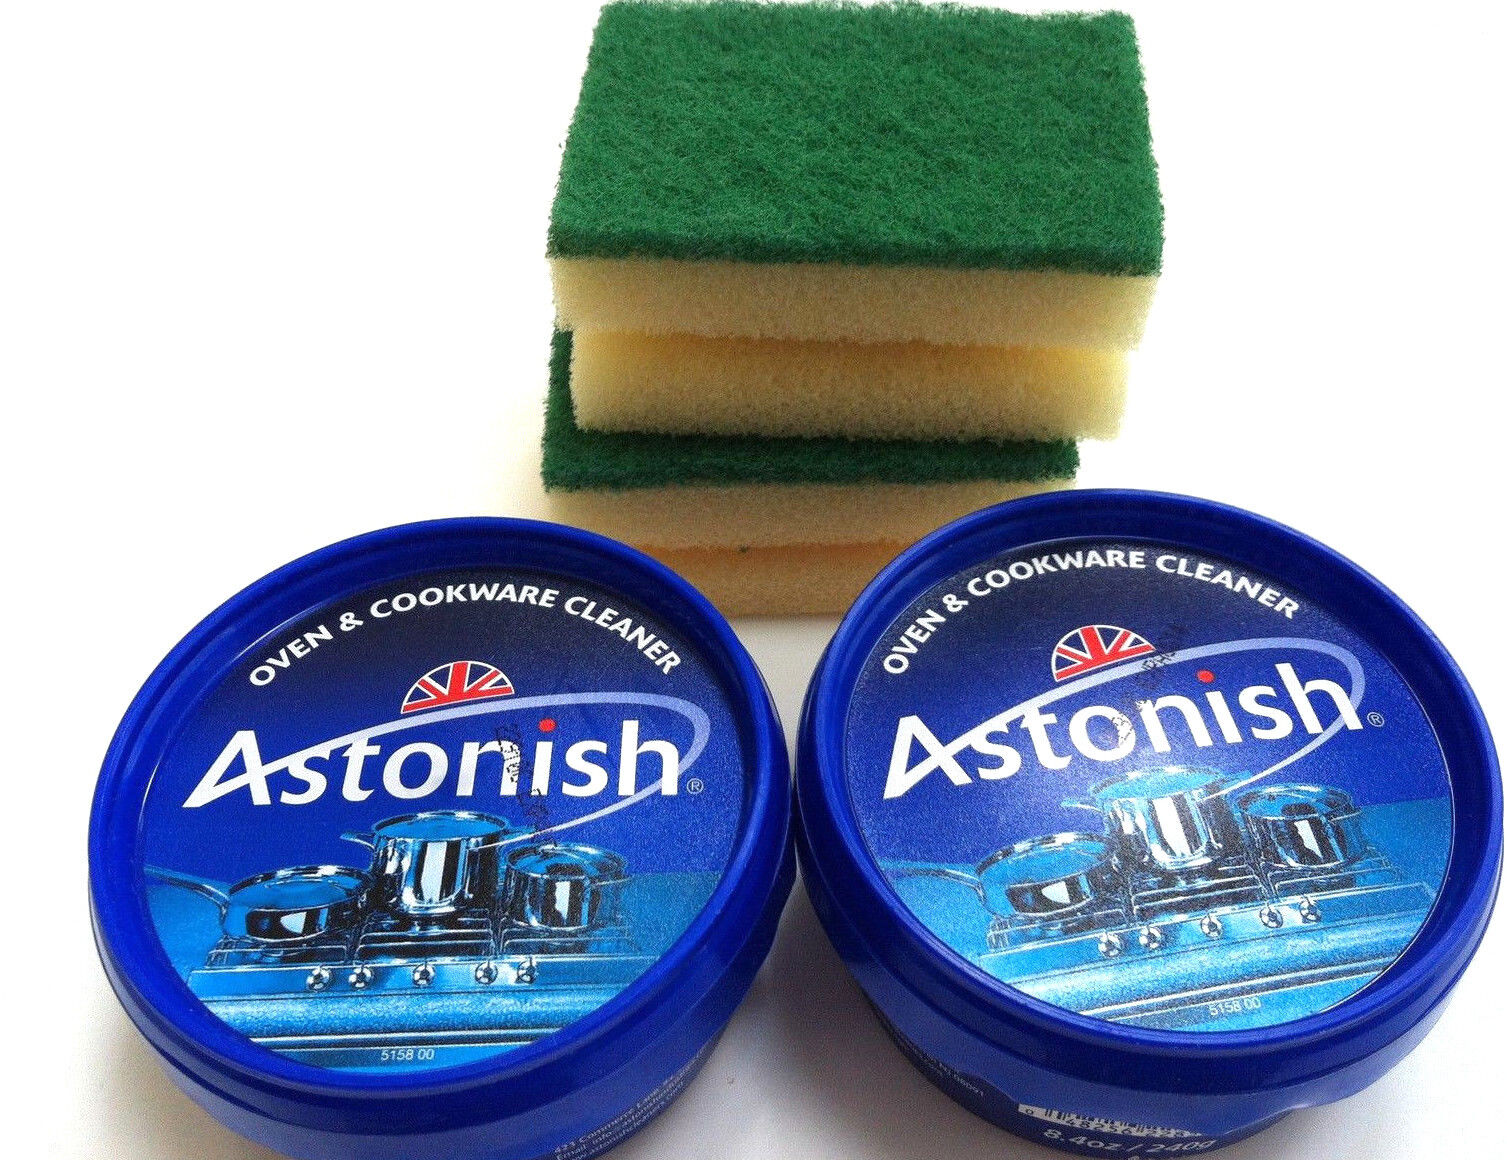 Astonish Oven & Cookware Cleaner and Grease Lifter